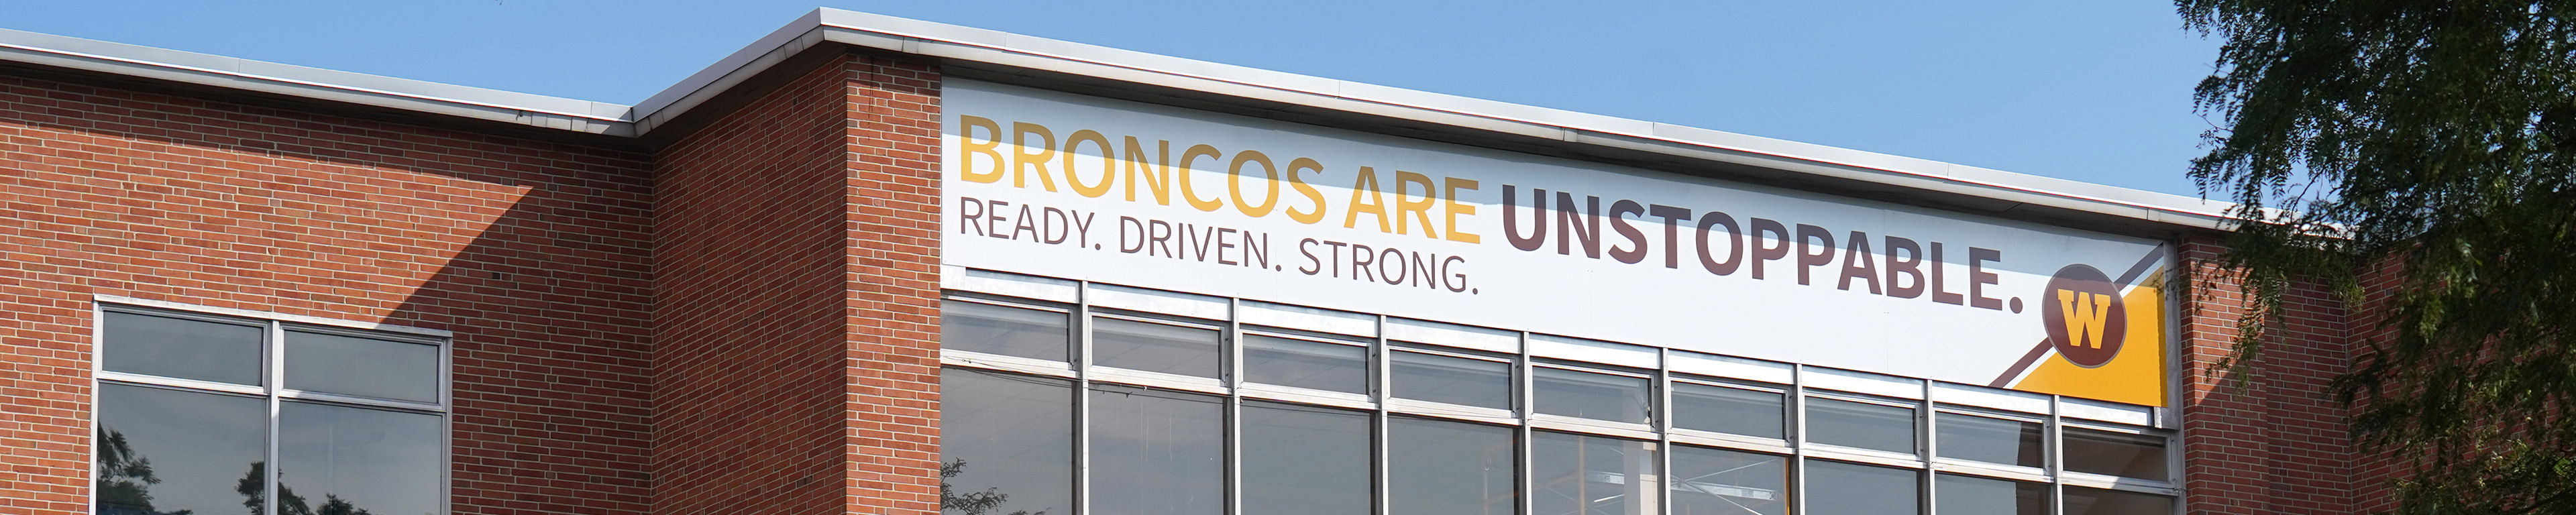 """A poster on campus reading """"Broncos are unstoppable."""""""